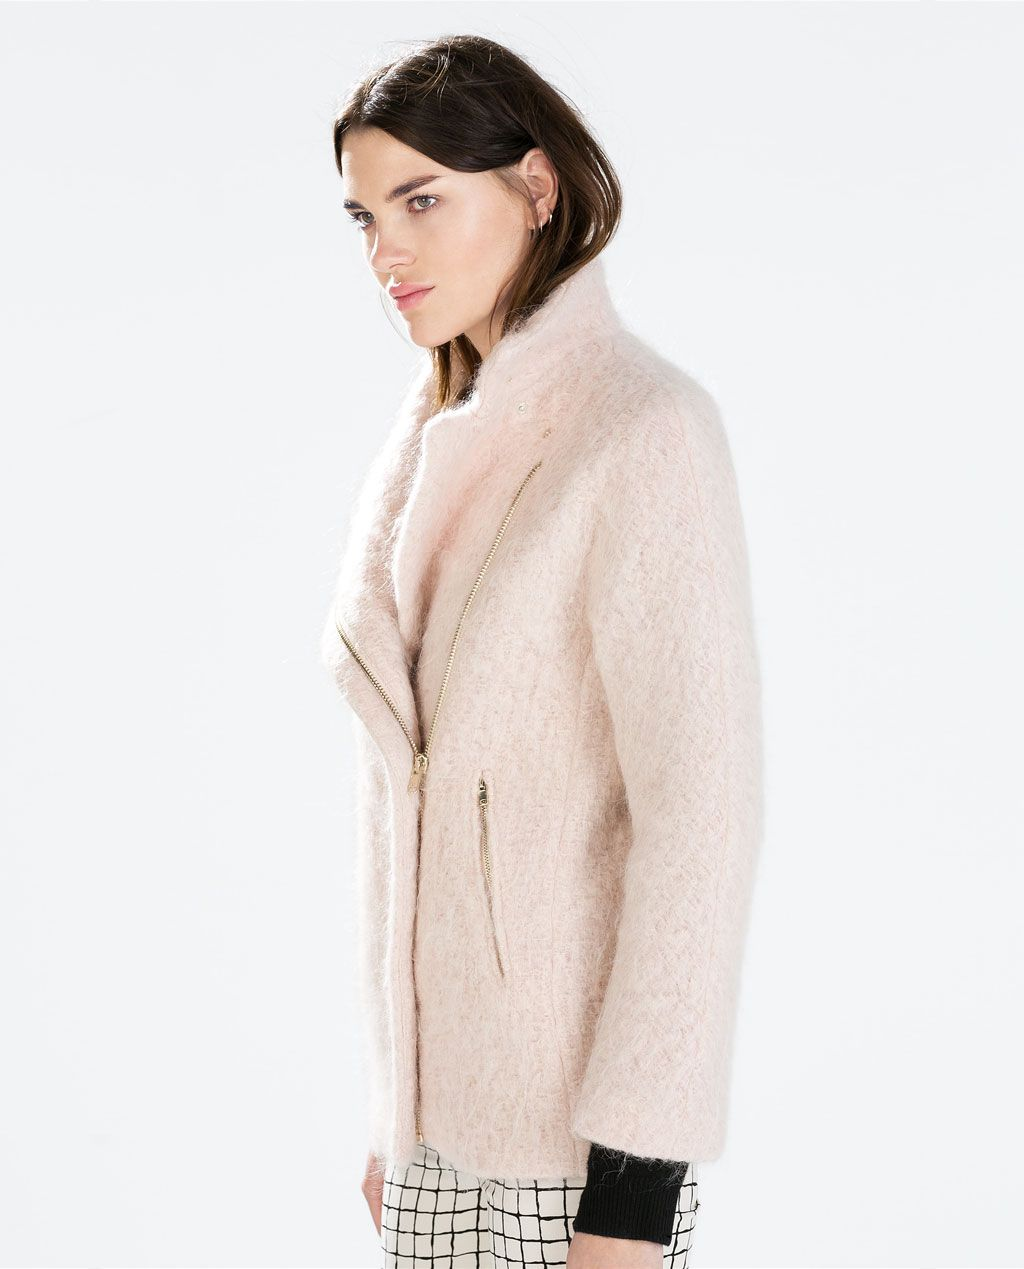 fd9b2681 COAT WITH FUNNEL COLLAR from #Zara REF. 8053/878 | My Style | Coat ...